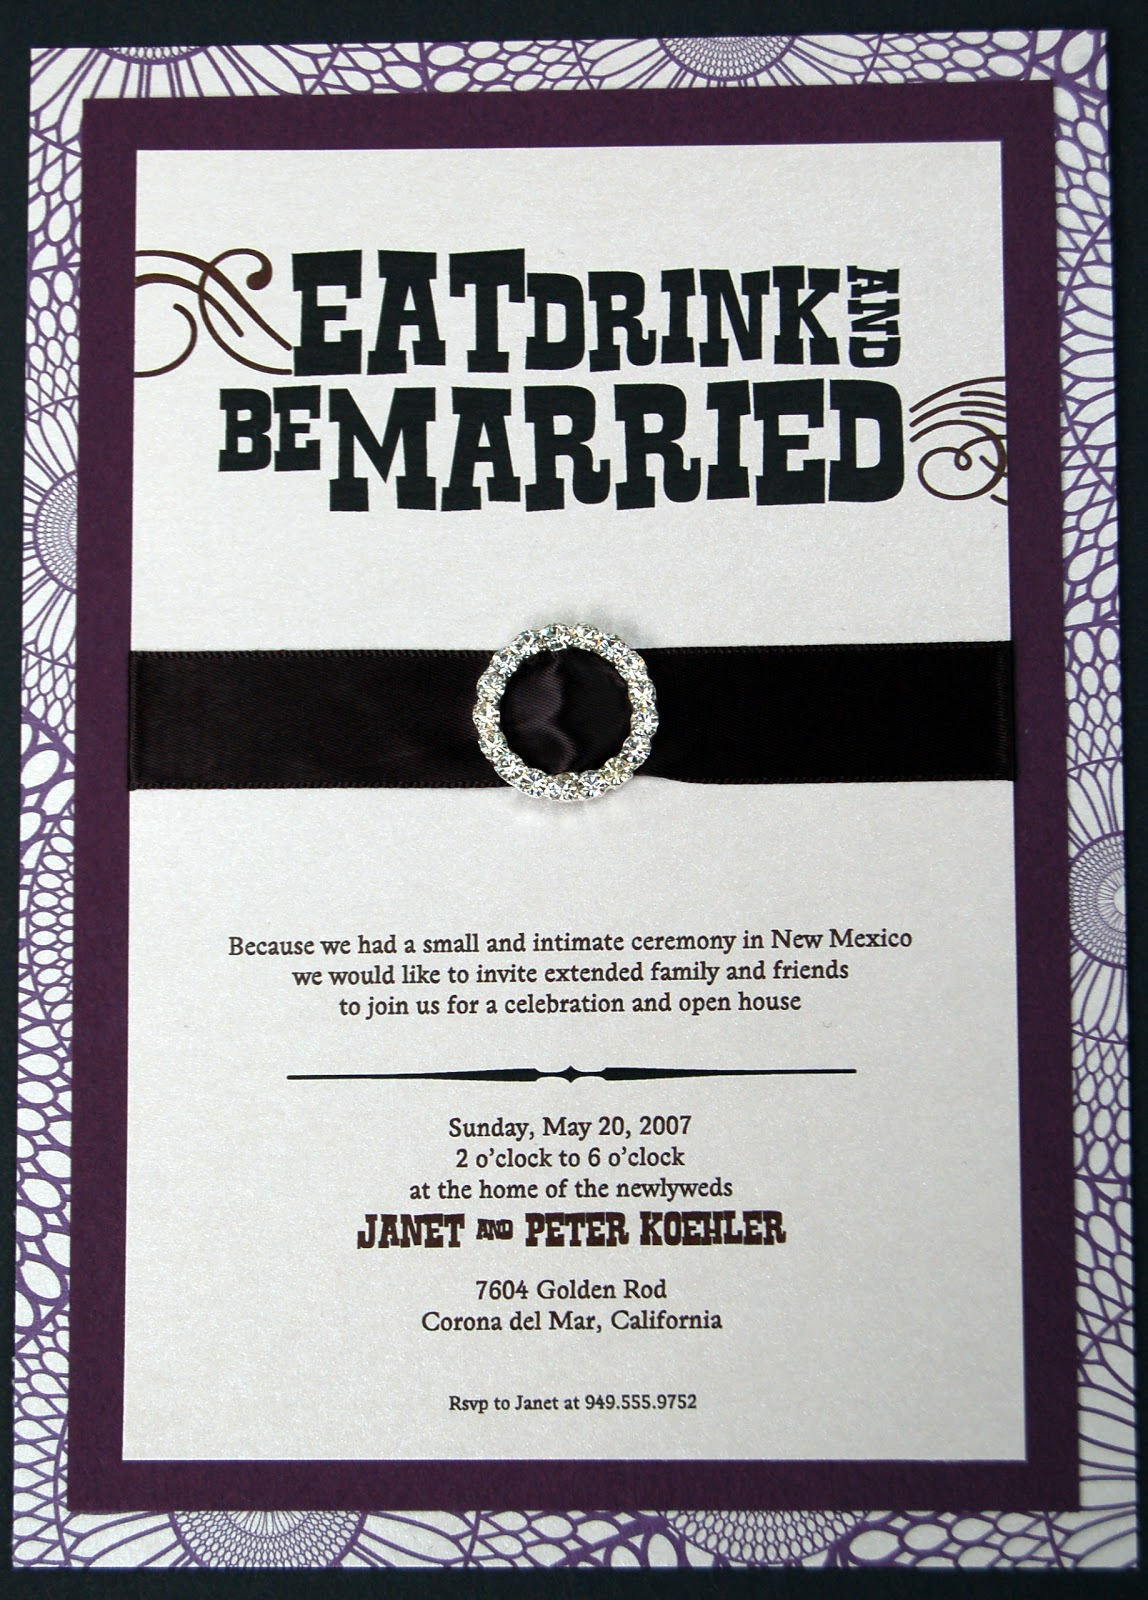 Non-Traditional Wedding Invitation Wording | Dress images